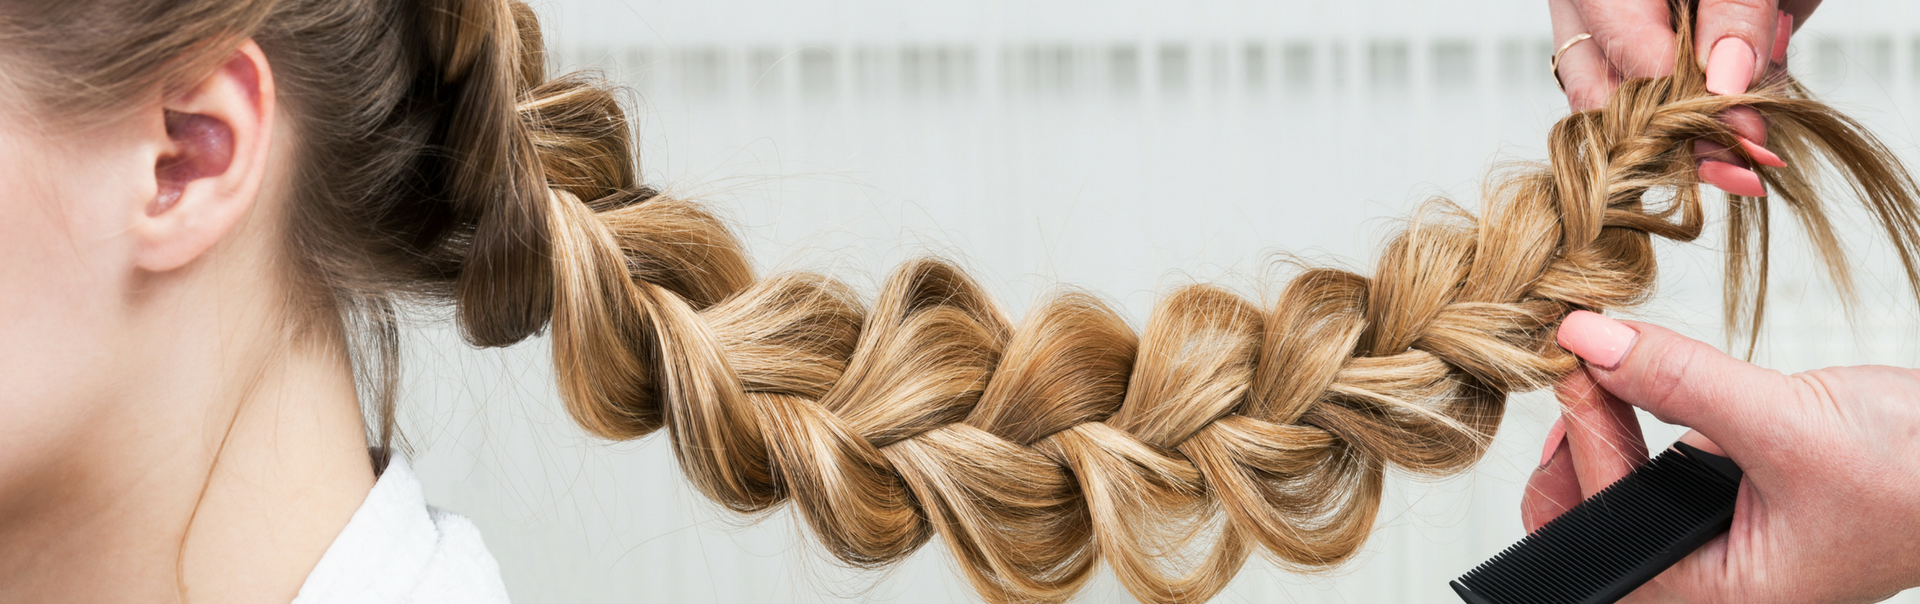 How To Achieve Strong Healthy Hair